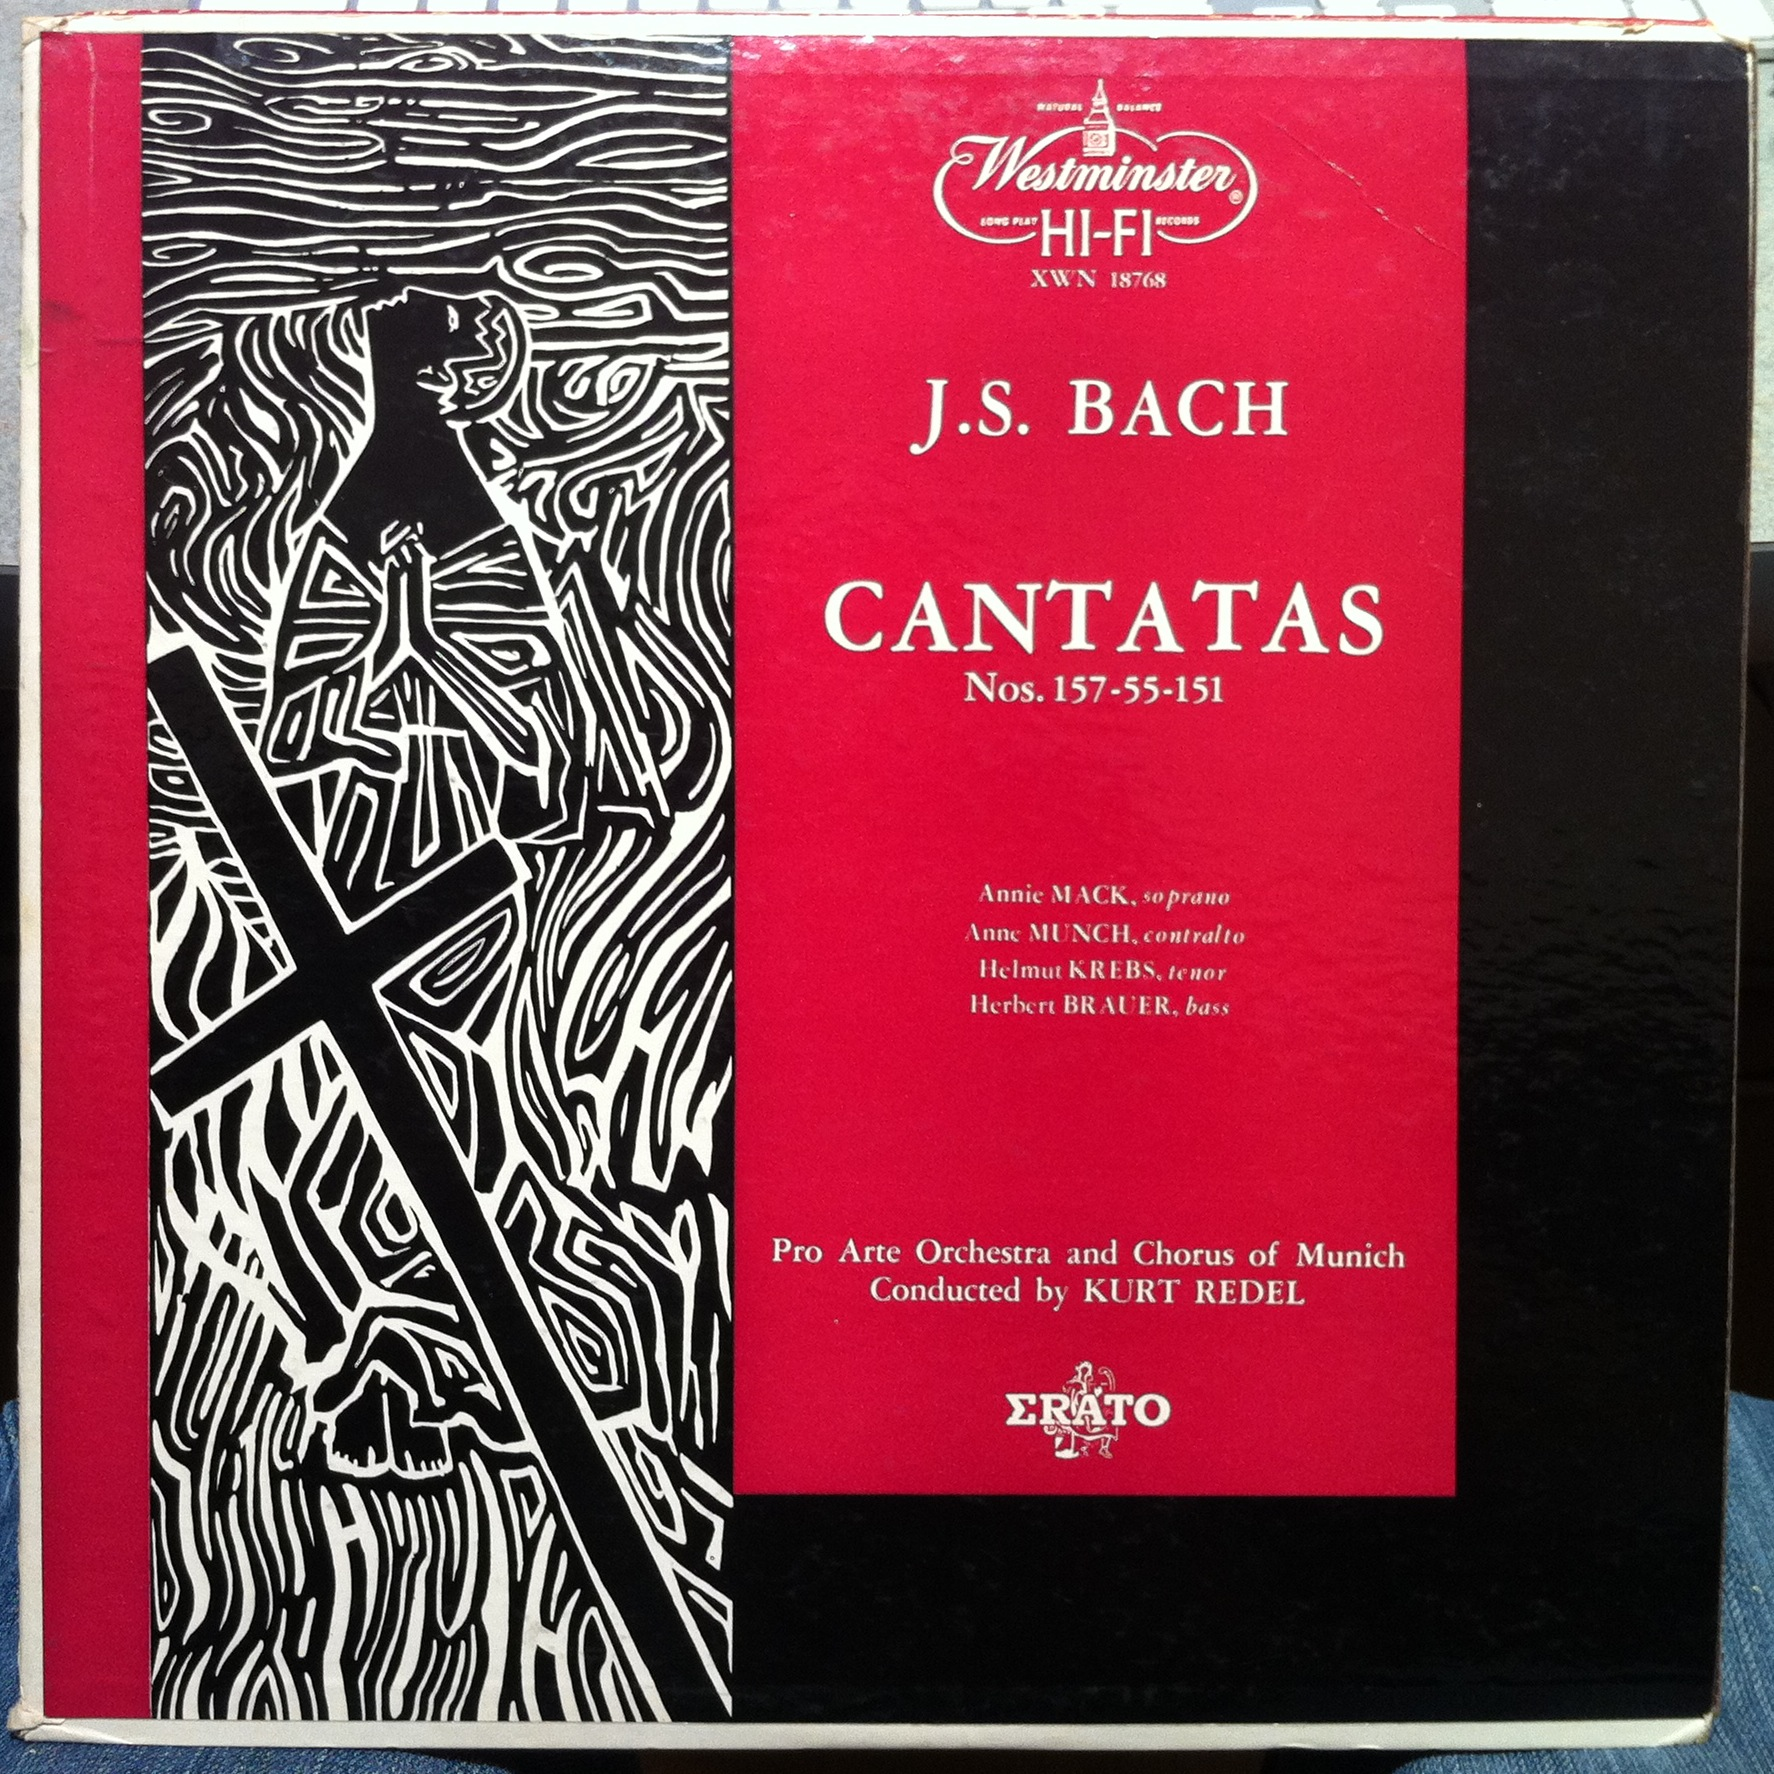 Cantata Bwv 151 Details Discography Part 1 Complete Recordings Austin Flats Rene Maroon 40 Recorded In Munich Bavaria Germany